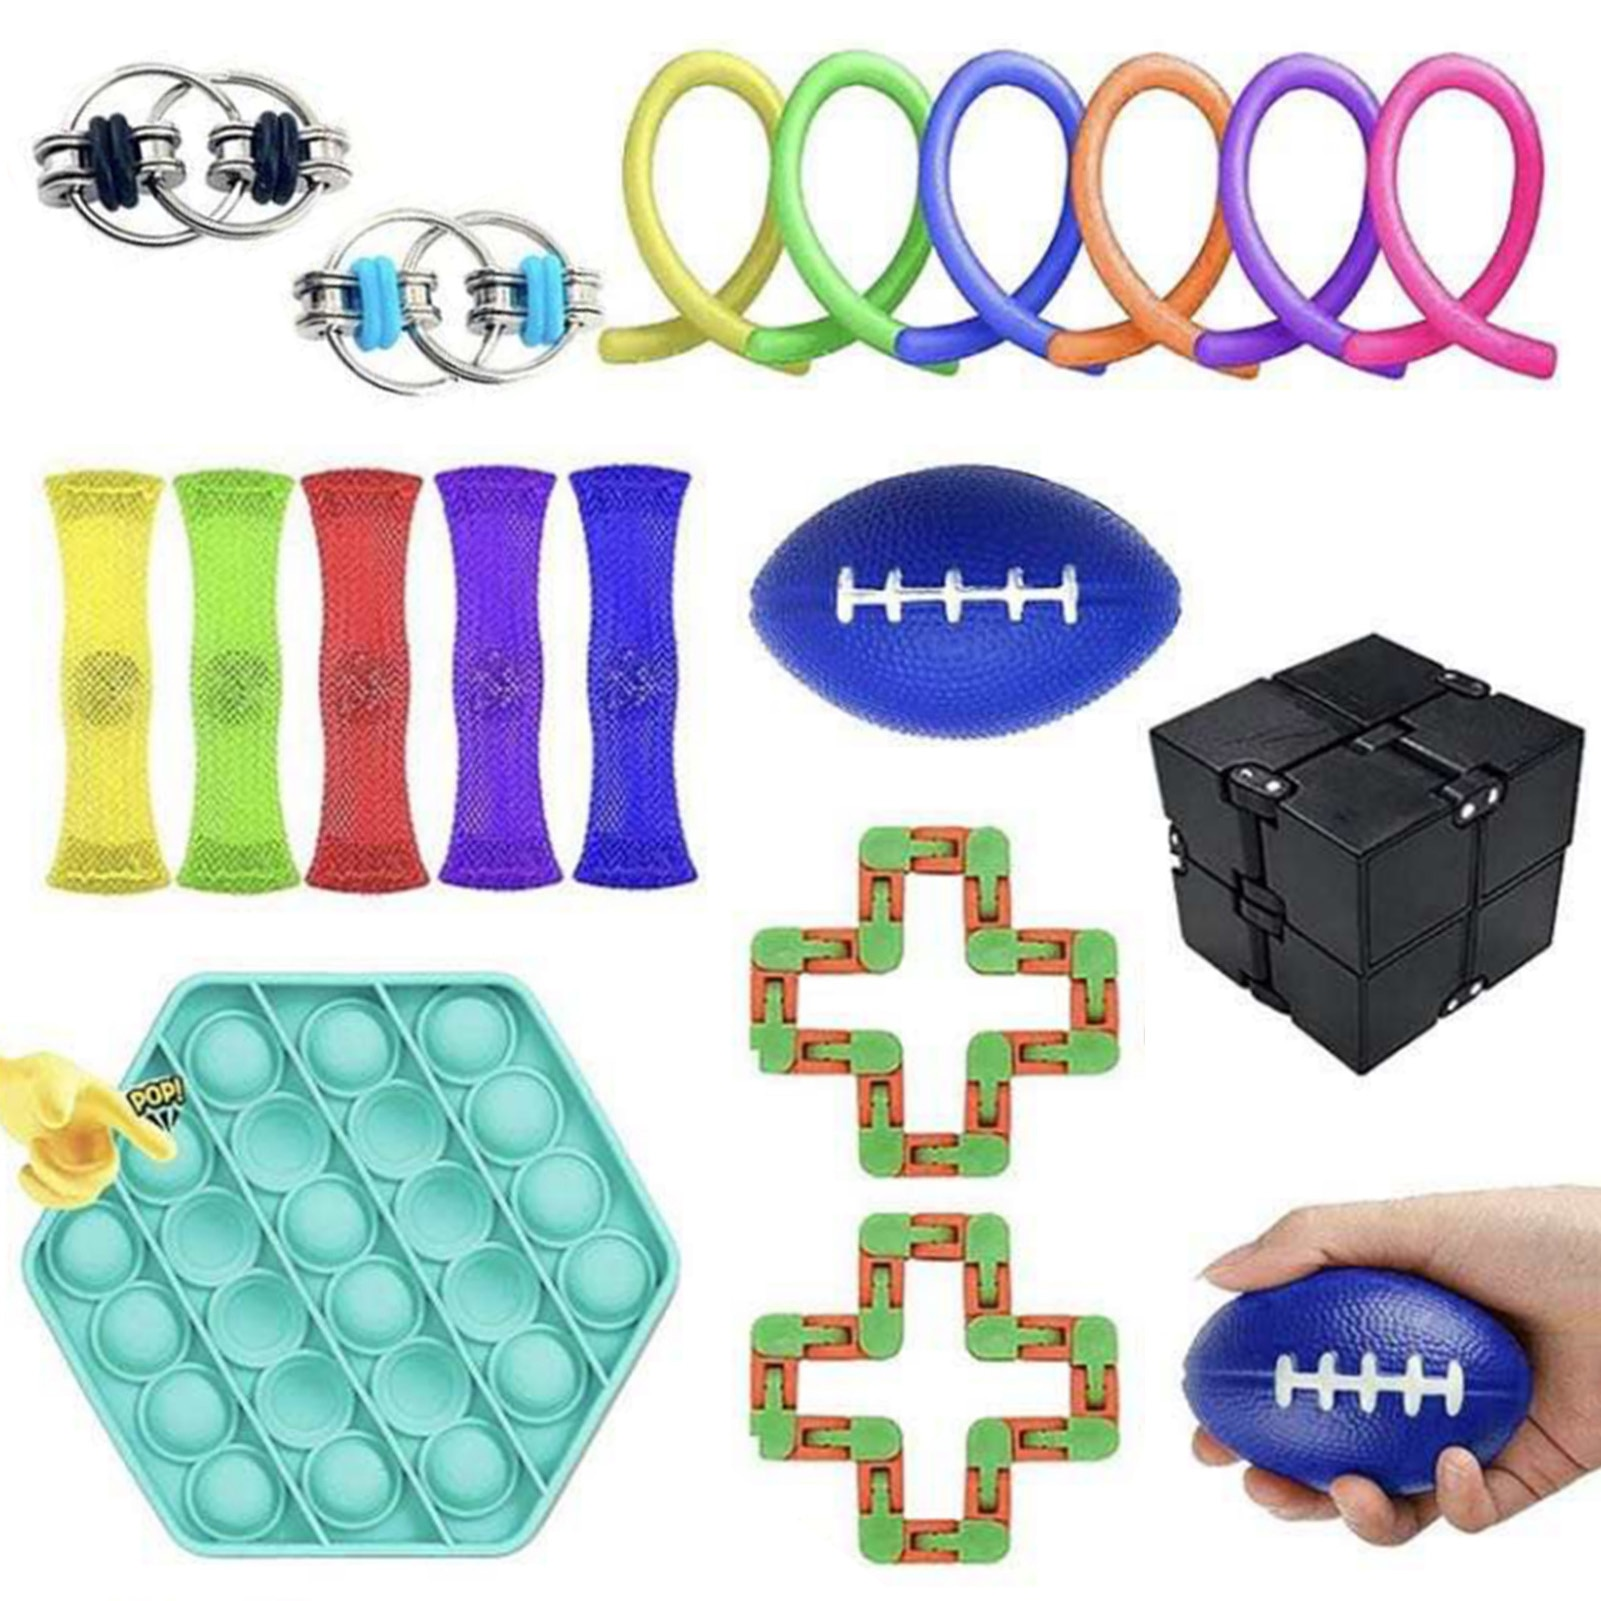 19PCS Sensory Fidget Toys Set Anti Stress Stretchy Strings Gift Pack Adults Kids Squishy Sensory Stress Relief Figet Toys enlarge